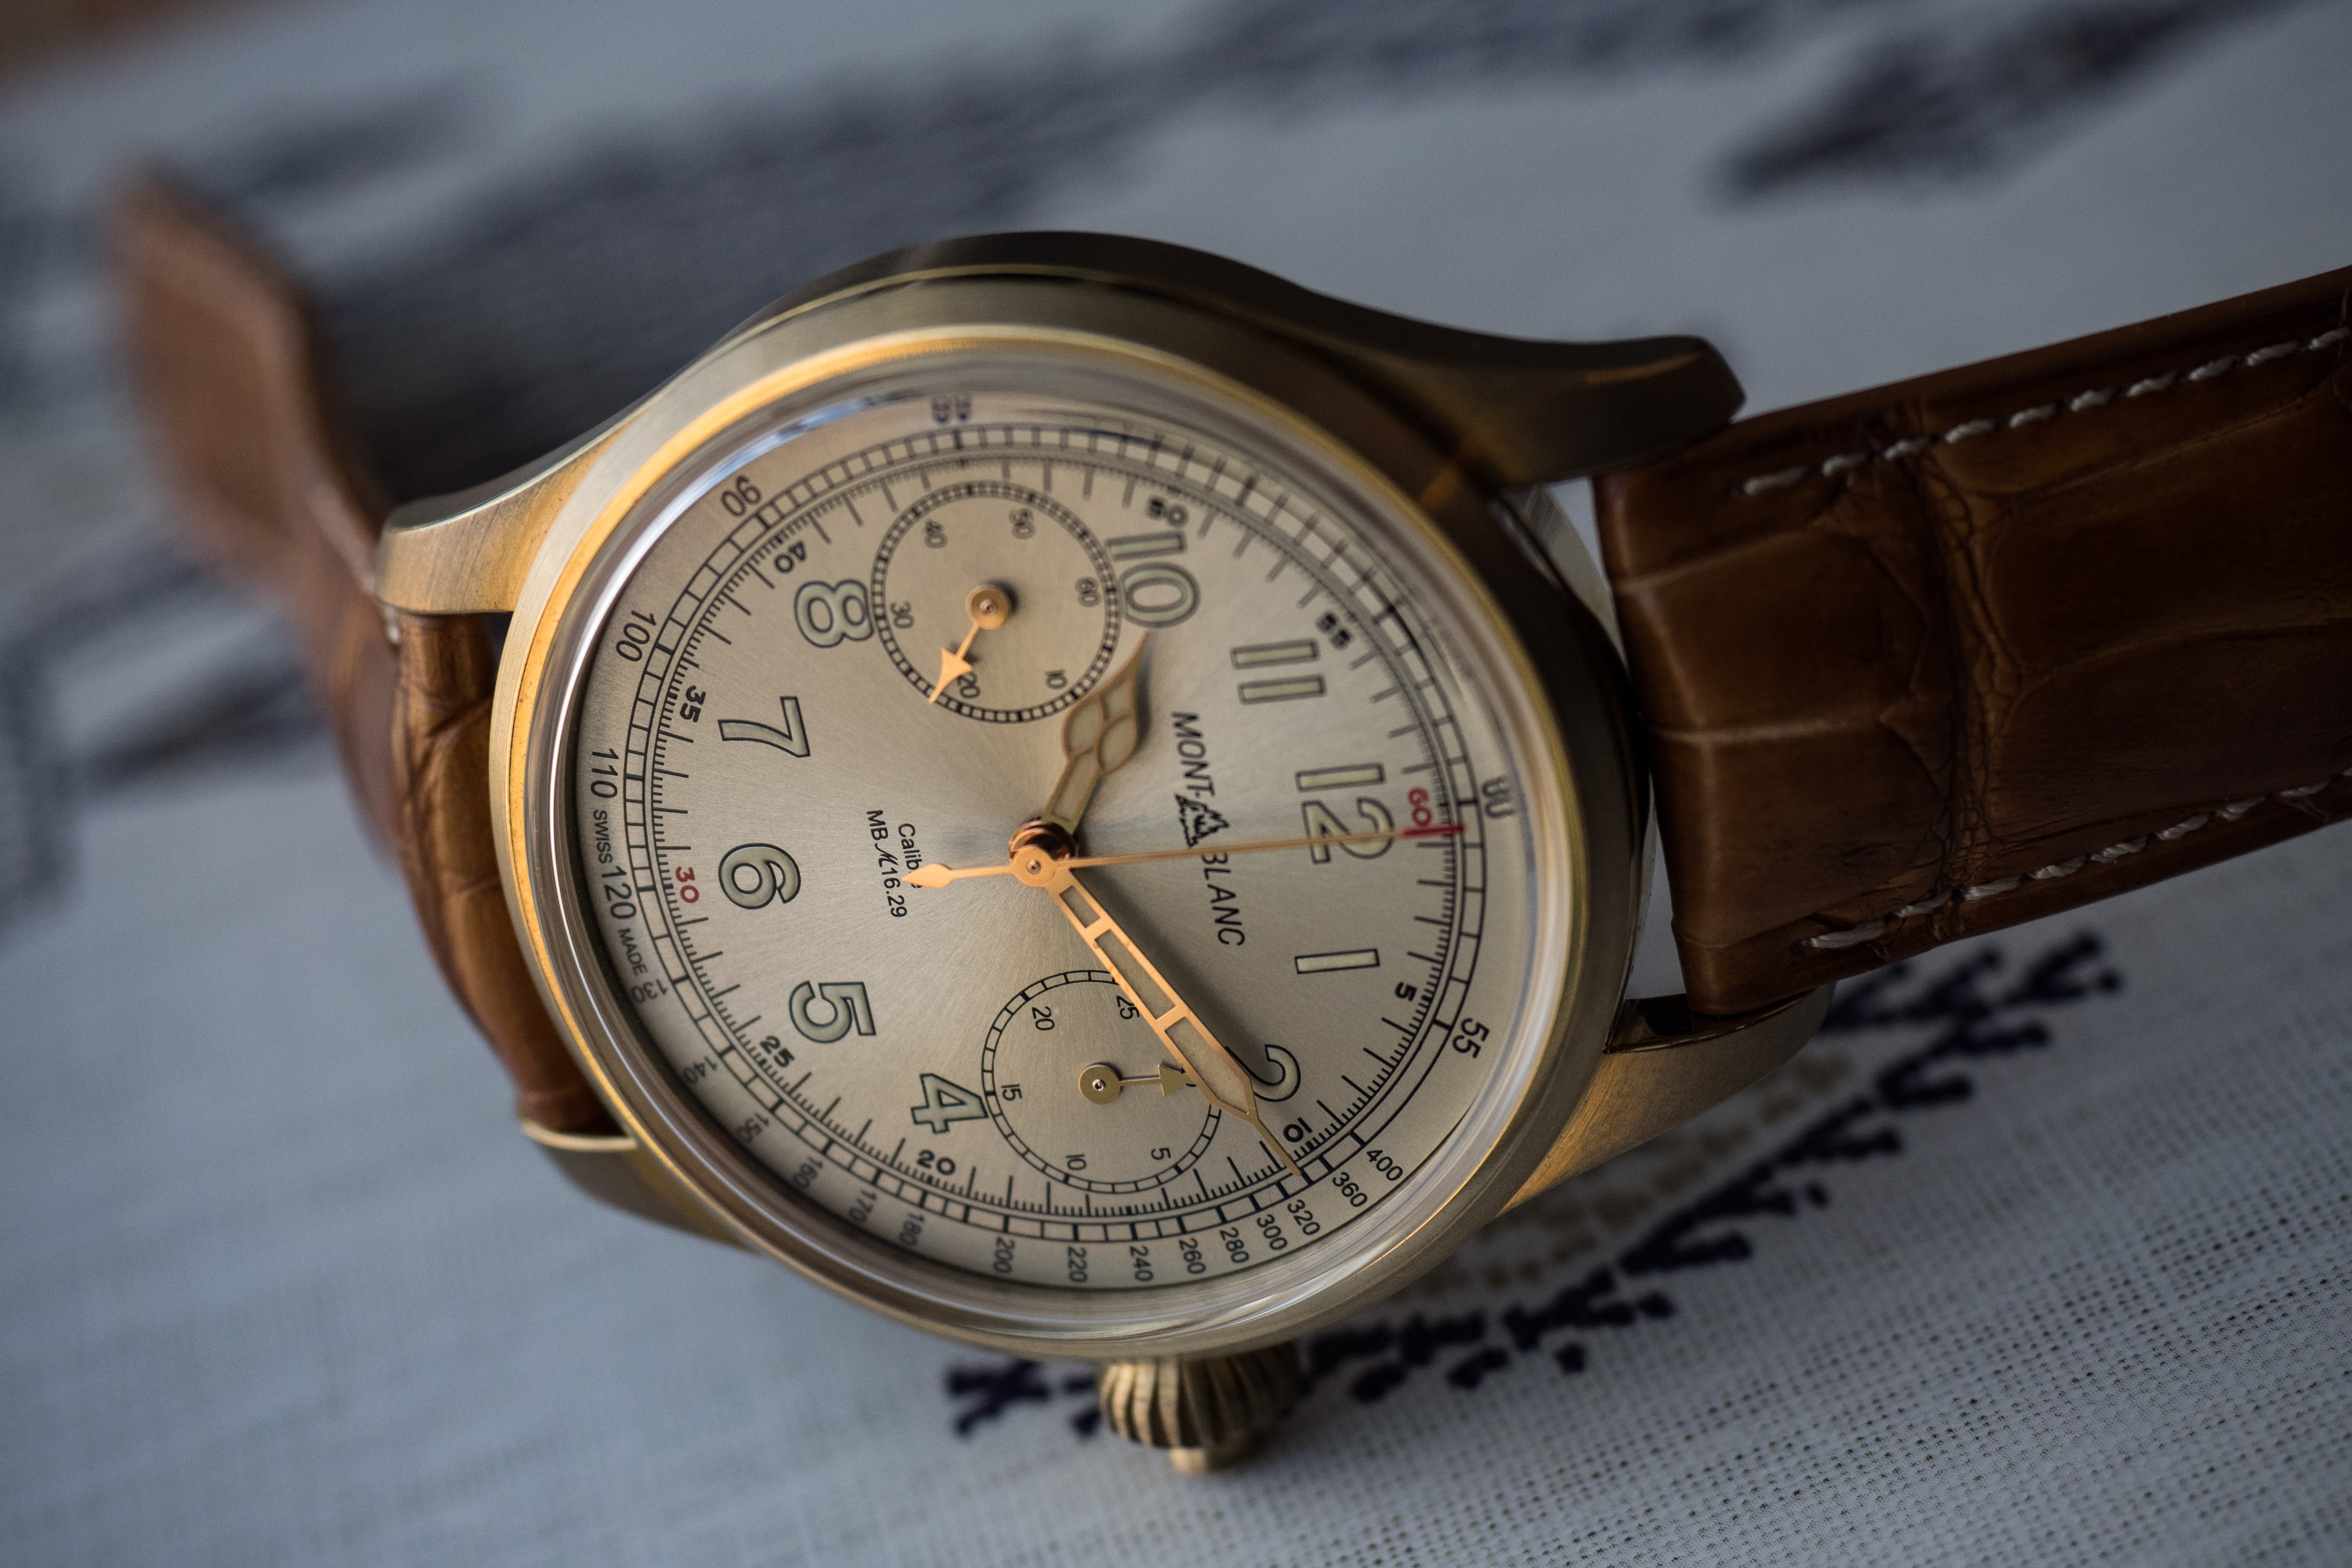 The 1858 Chronograph Tachymeter Limited Edition hands highlight Introducing: For SIHH 2017, Montblanc Announces The 1858 Chronograph Tachymeter Limited Edition In Bronze (Live Pics, Pricing) Introducing: For SIHH 2017, Montblanc Announces The 1858 Chronograph Tachymeter Limited Edition In Bronze (Live Pics, Pricing) PA250528